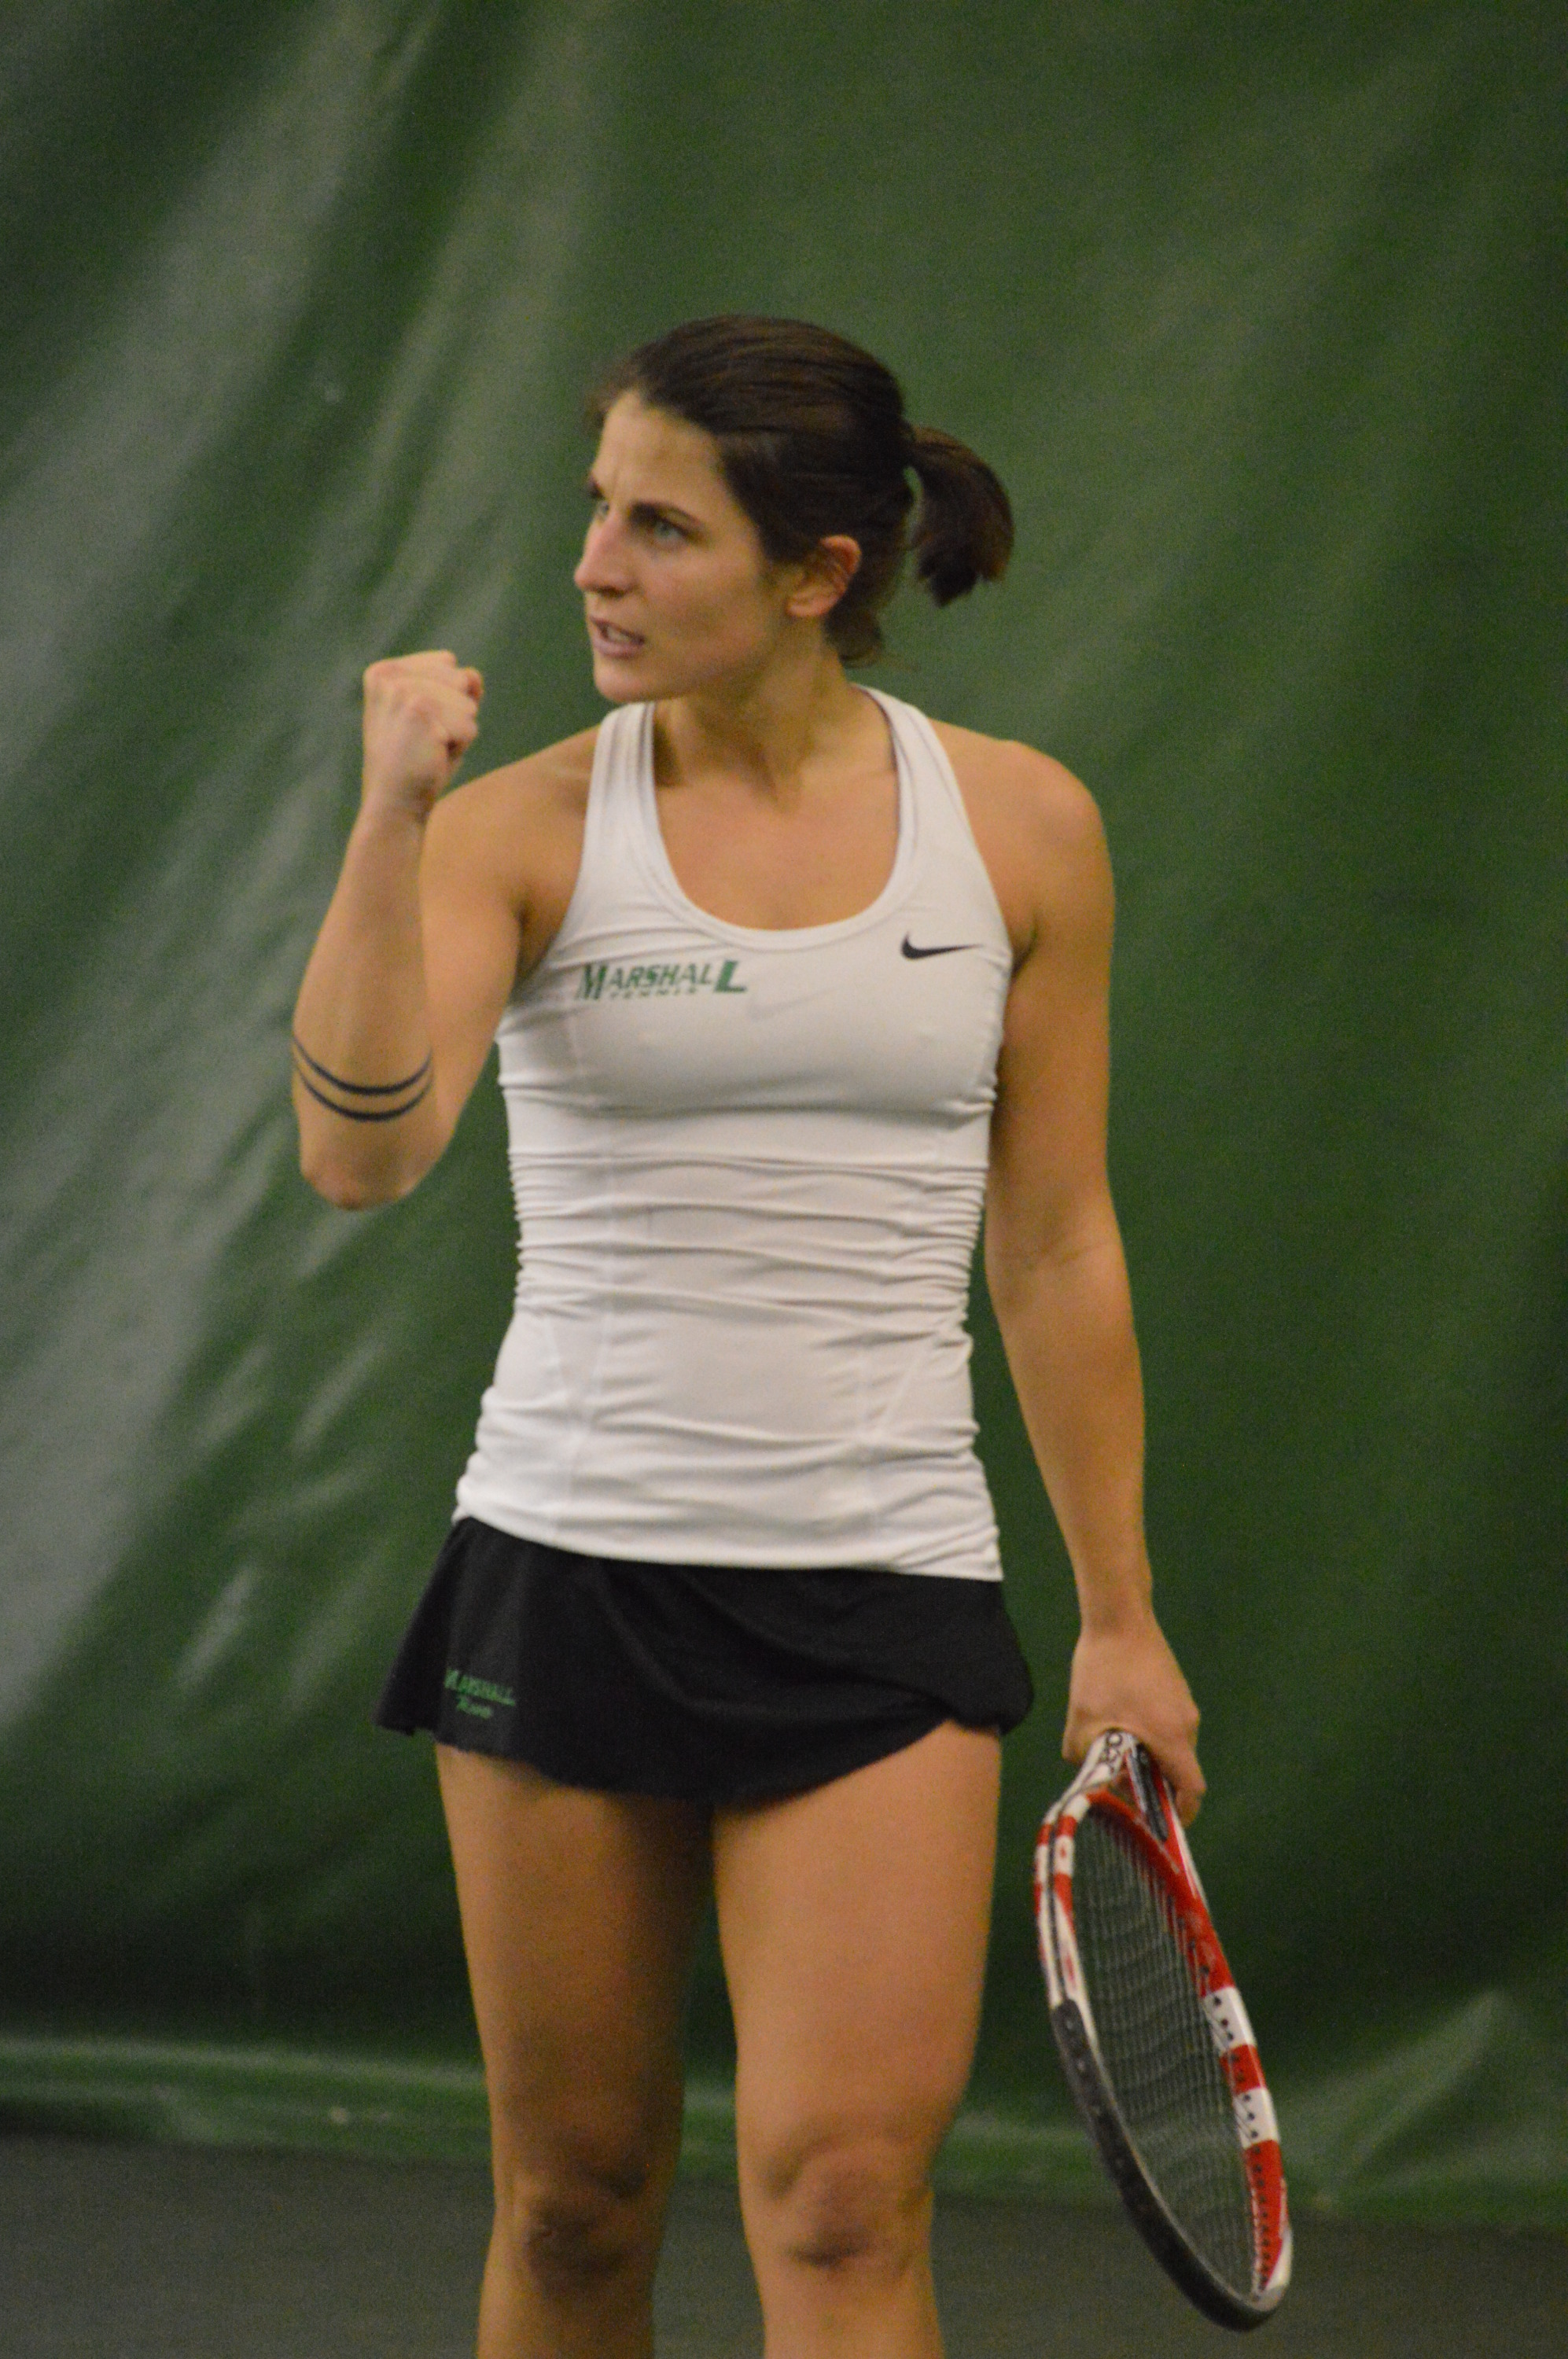 Dana Oppinger collected a three-set victory in No. 1 singles